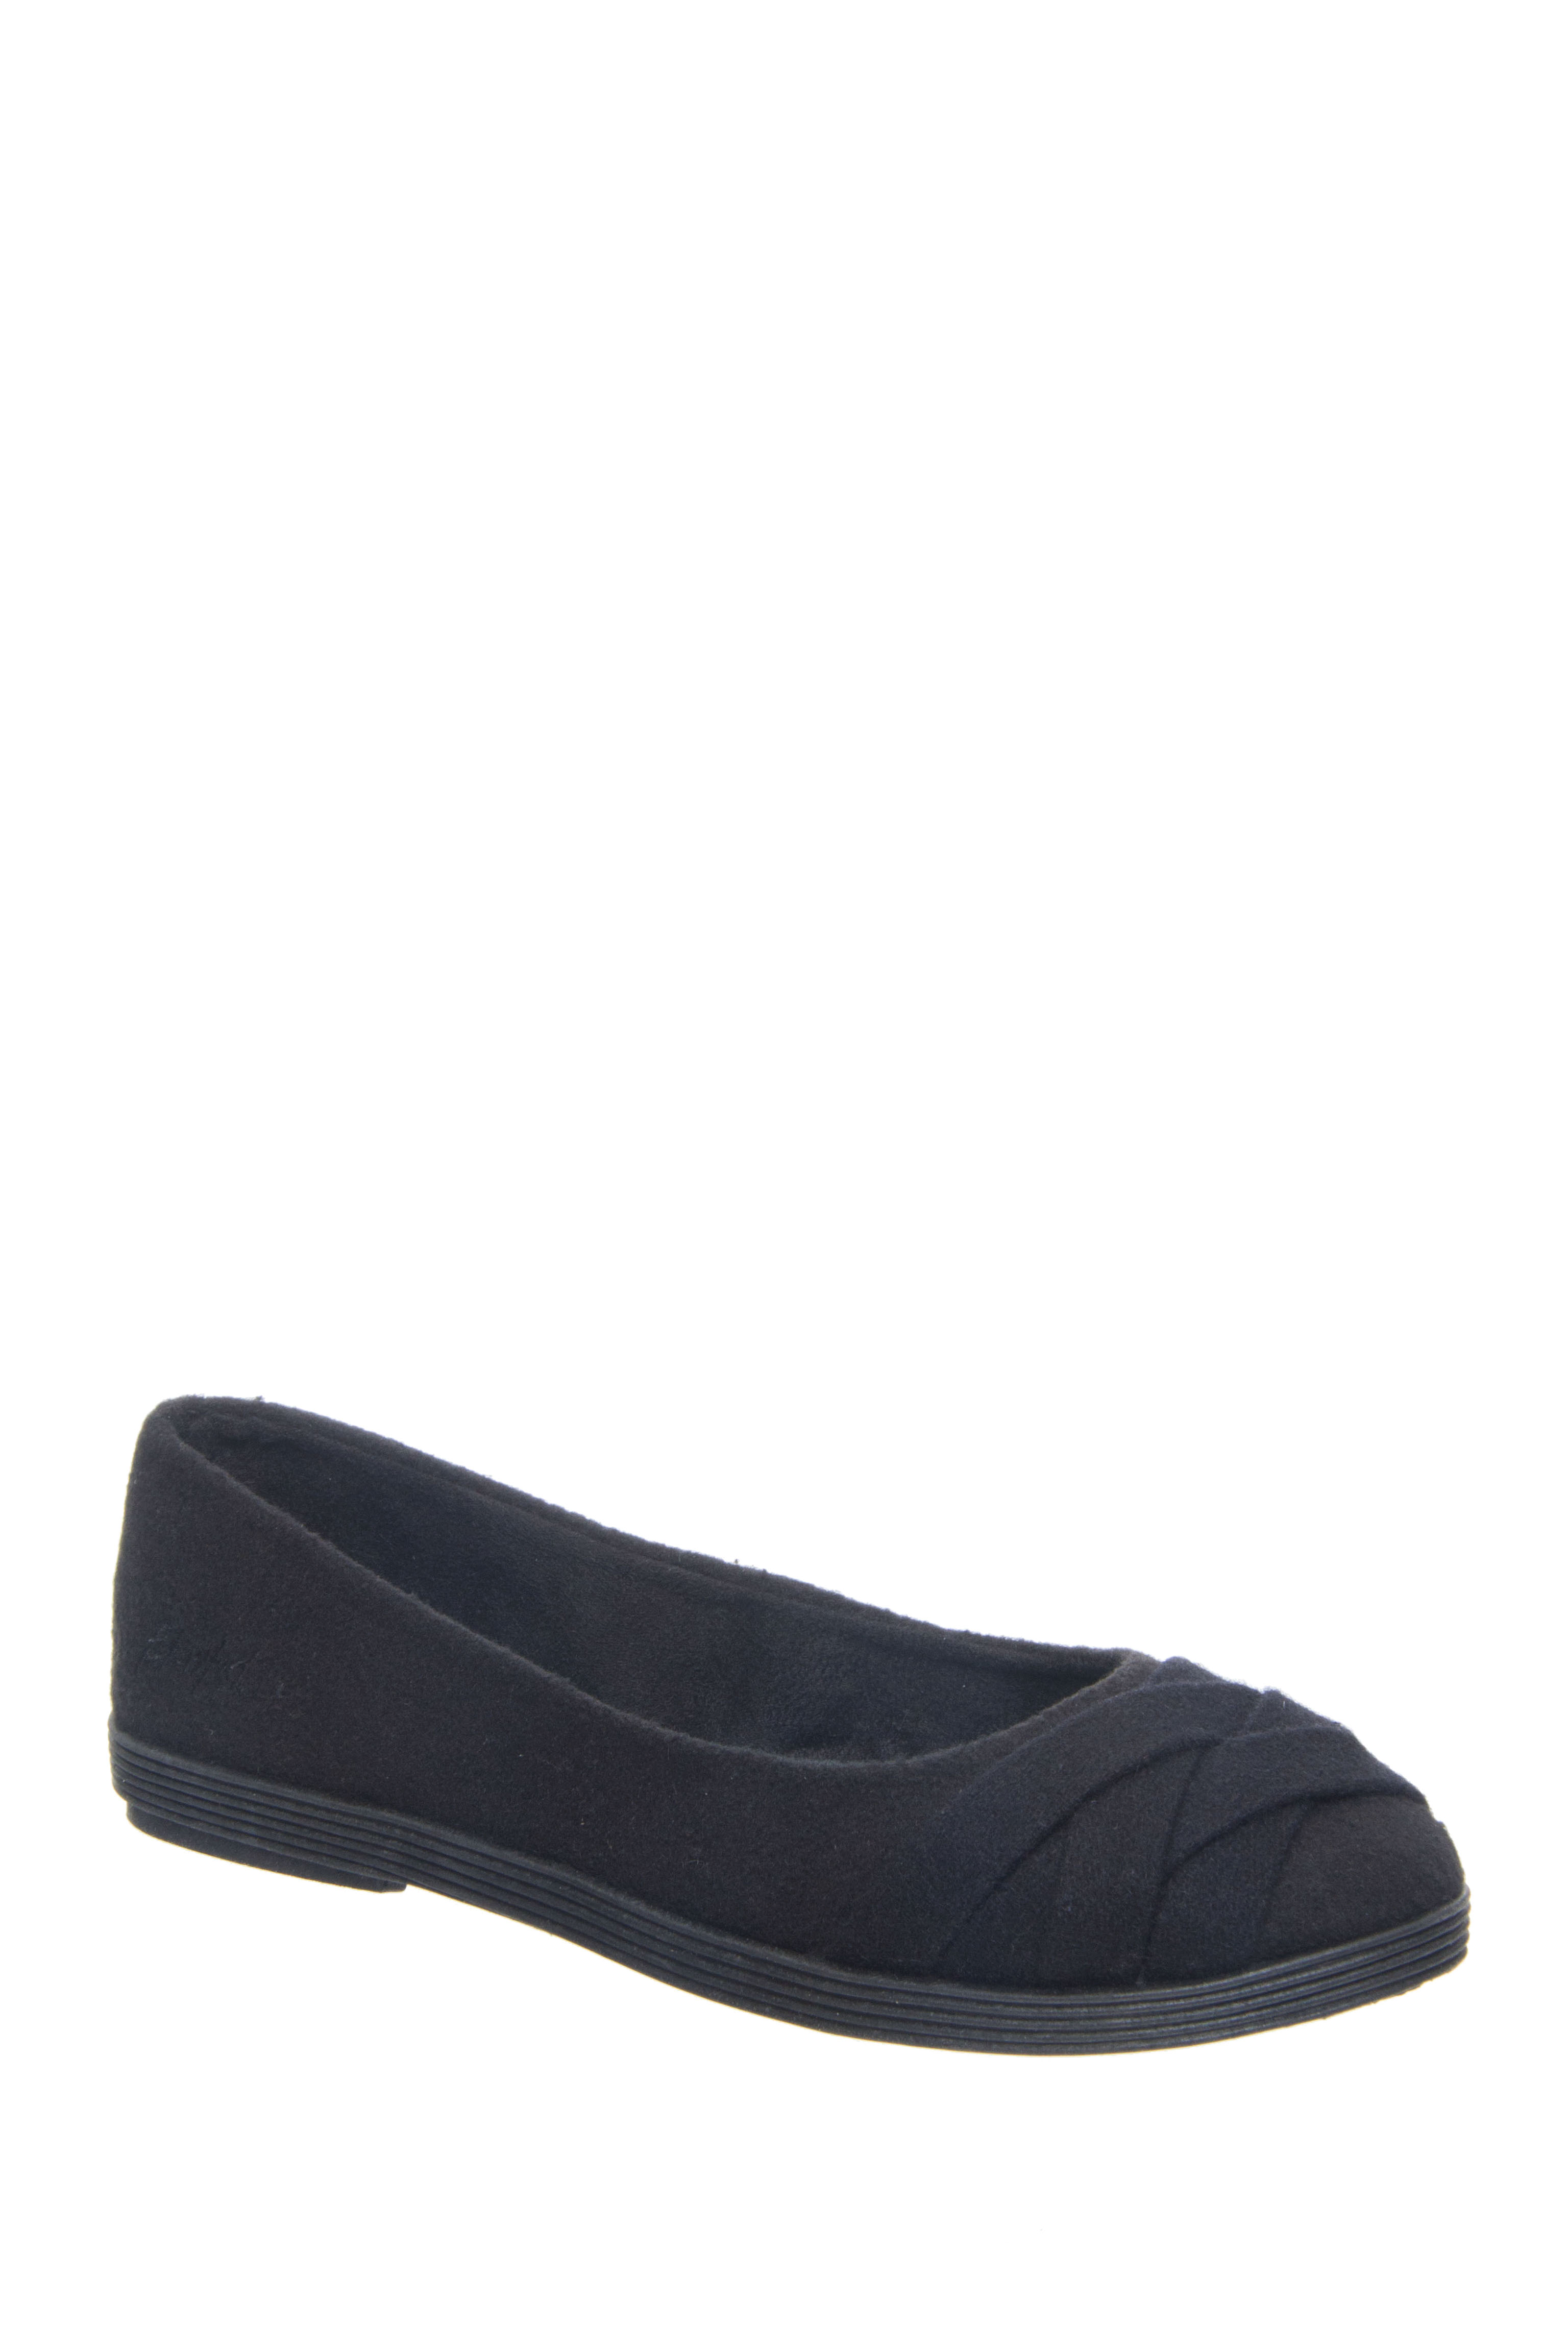 Blowfish Glo 2 Round Toe Flats - Black